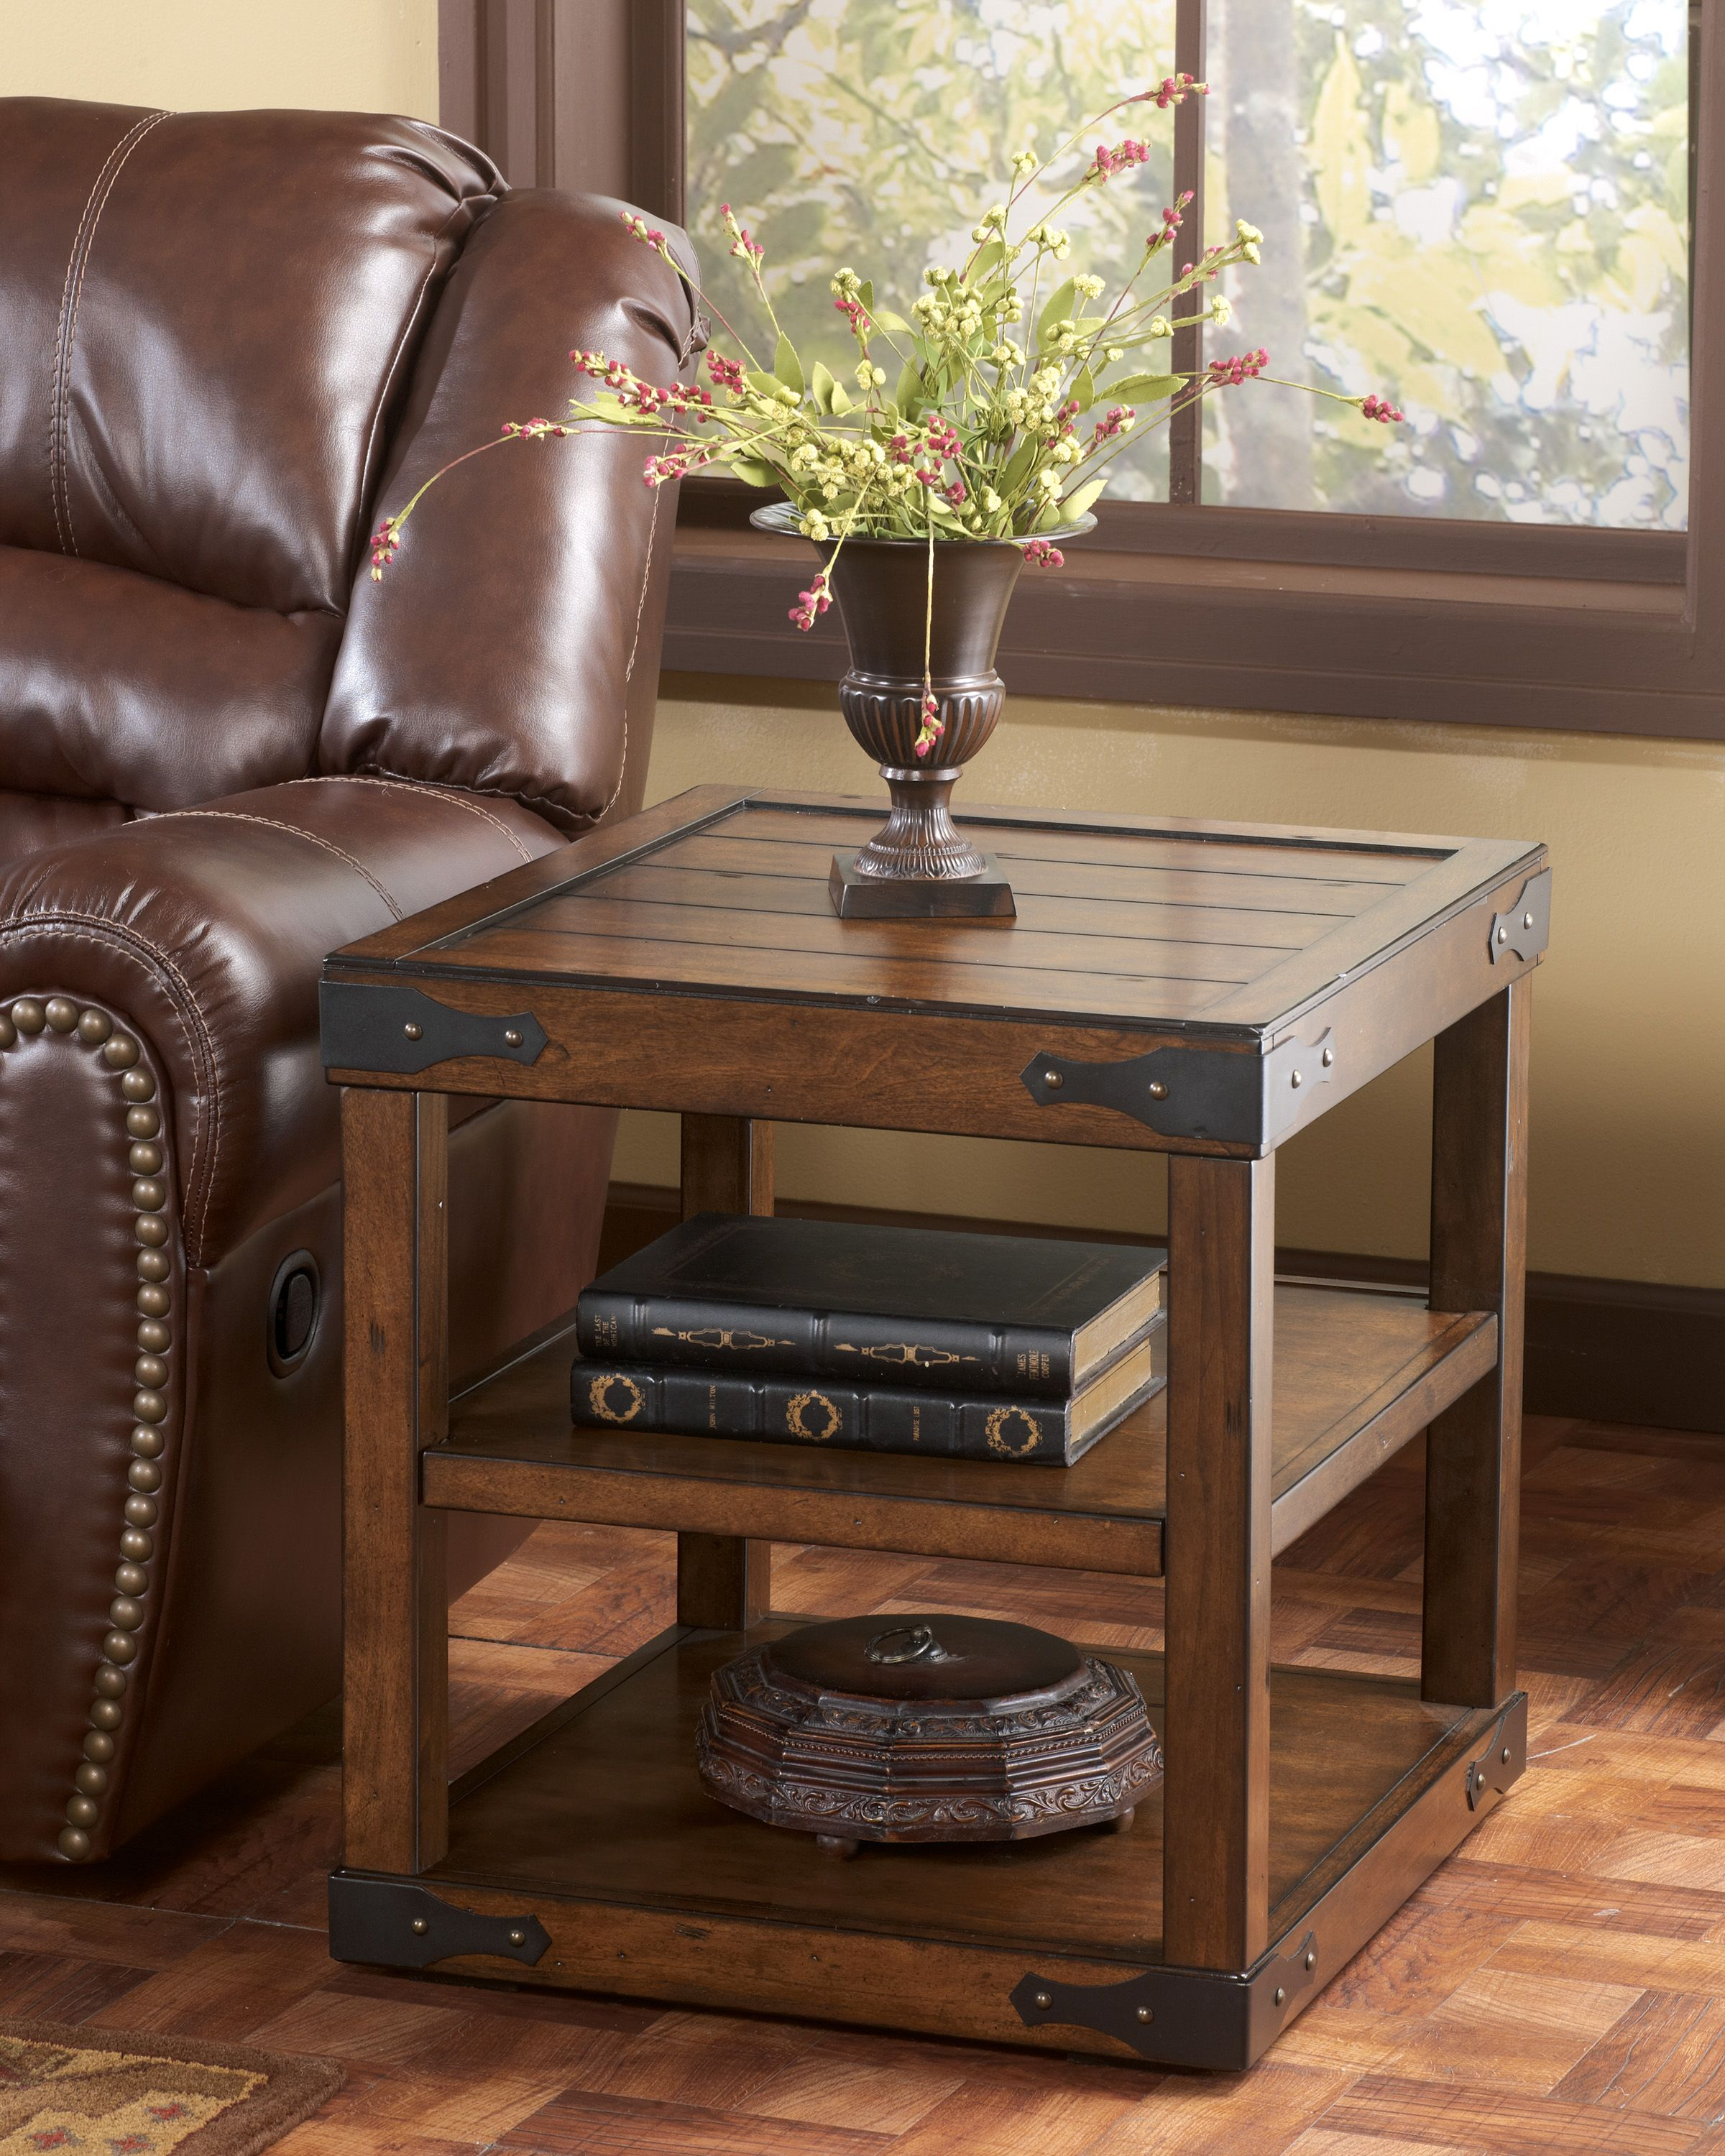 Rustic End Tables Google Search Like The Table And The Chair